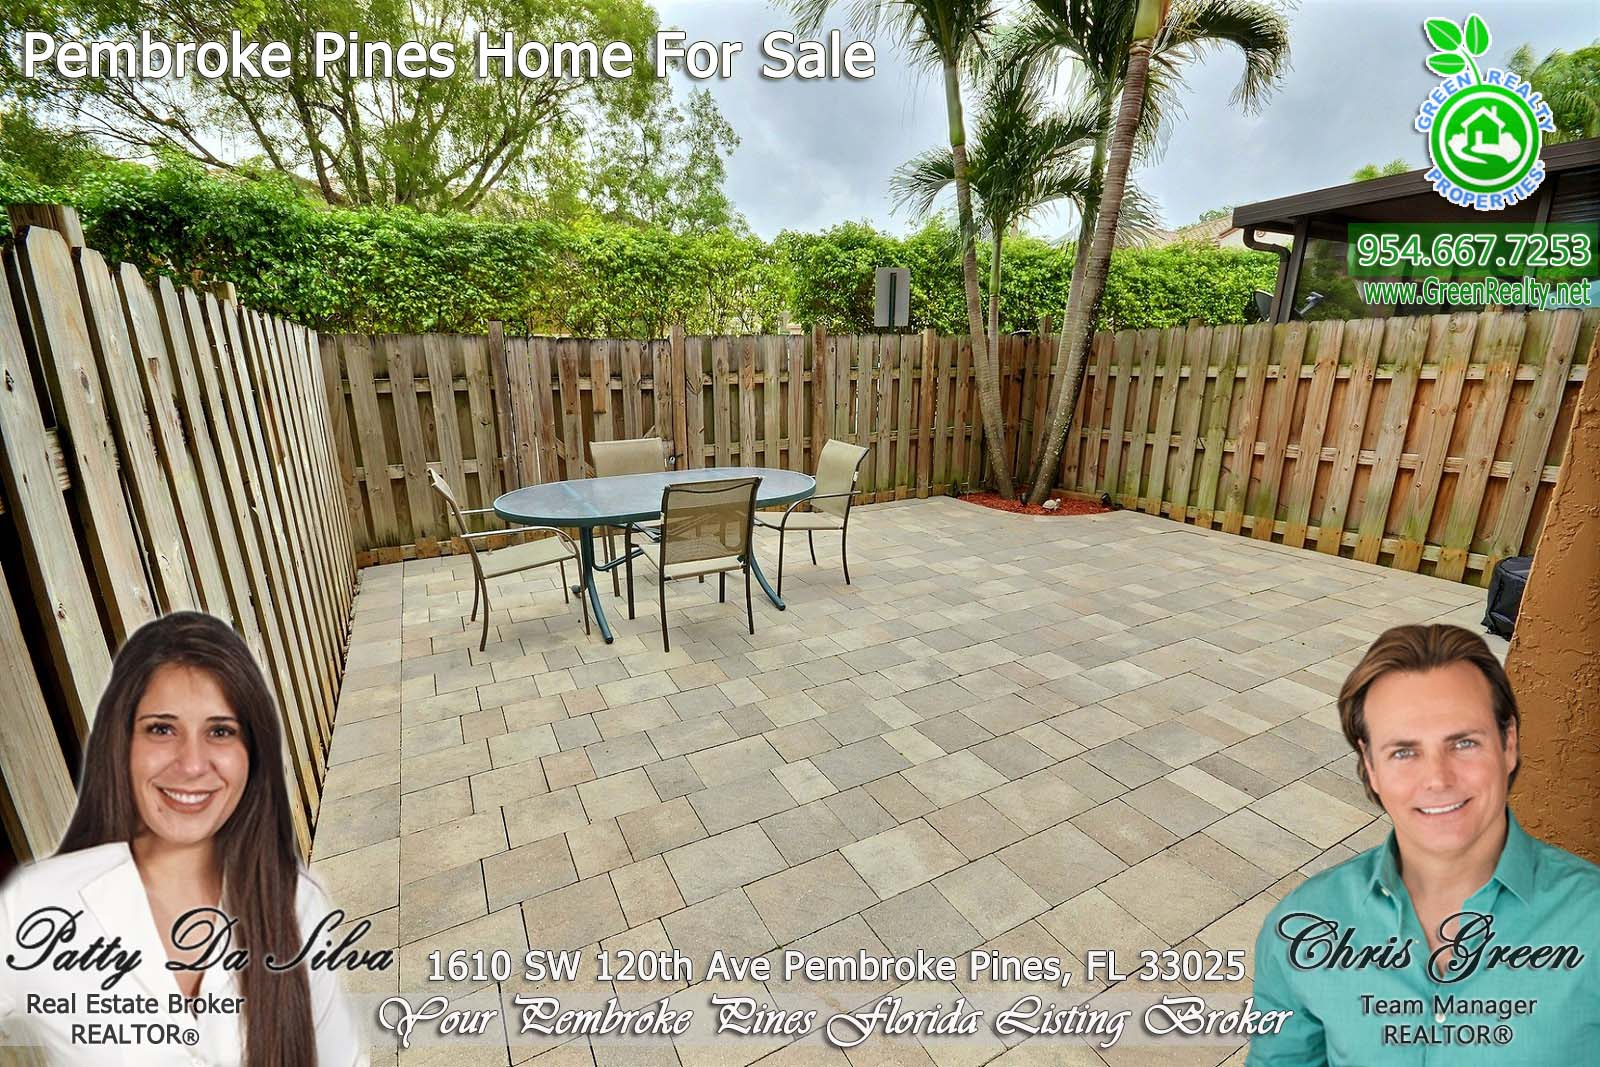 26 Las Palmas at Pembroke Pines Homes For Sale (5)